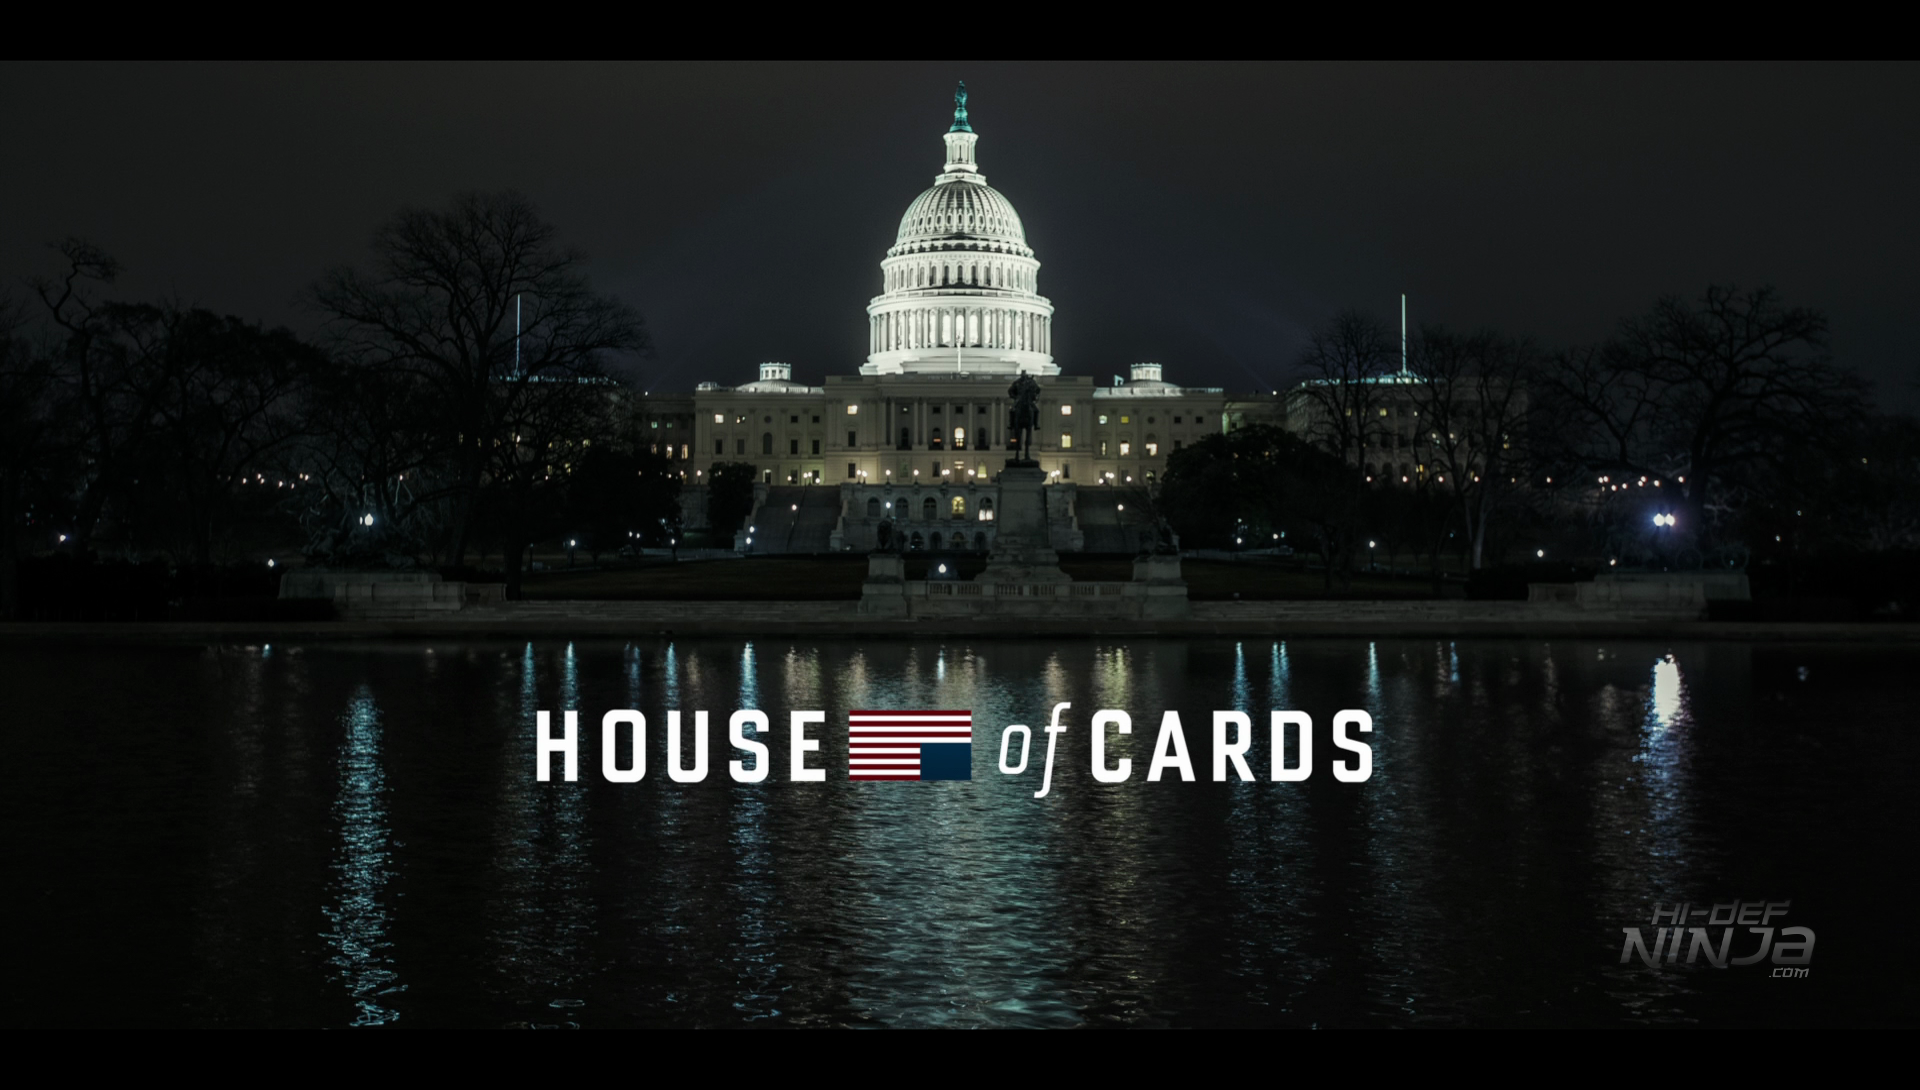 House-of-Cards-Season-4-HiDefNinja (1)